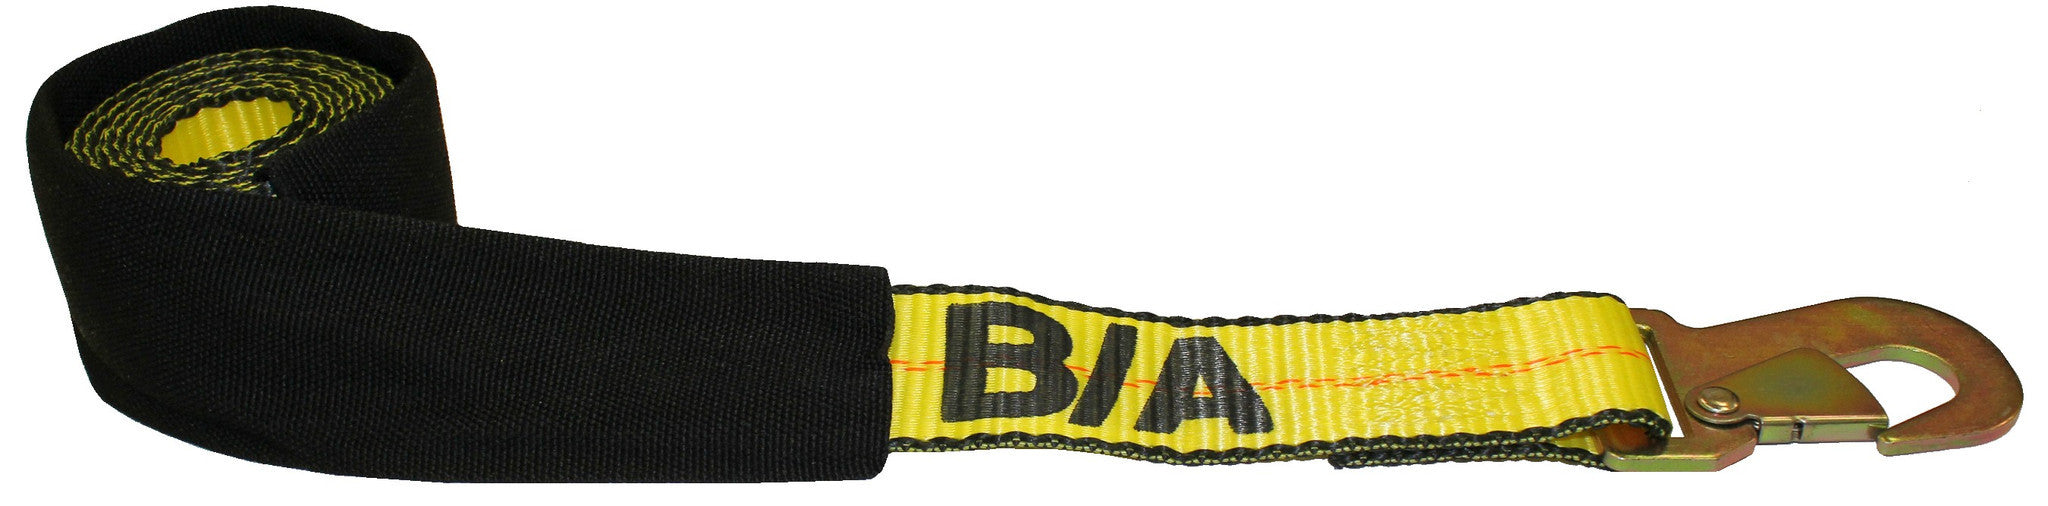 38-3D  -  8ft. Snap Hook ( Dynamic Style) Wheel Strap w/ Cordura Sleeve